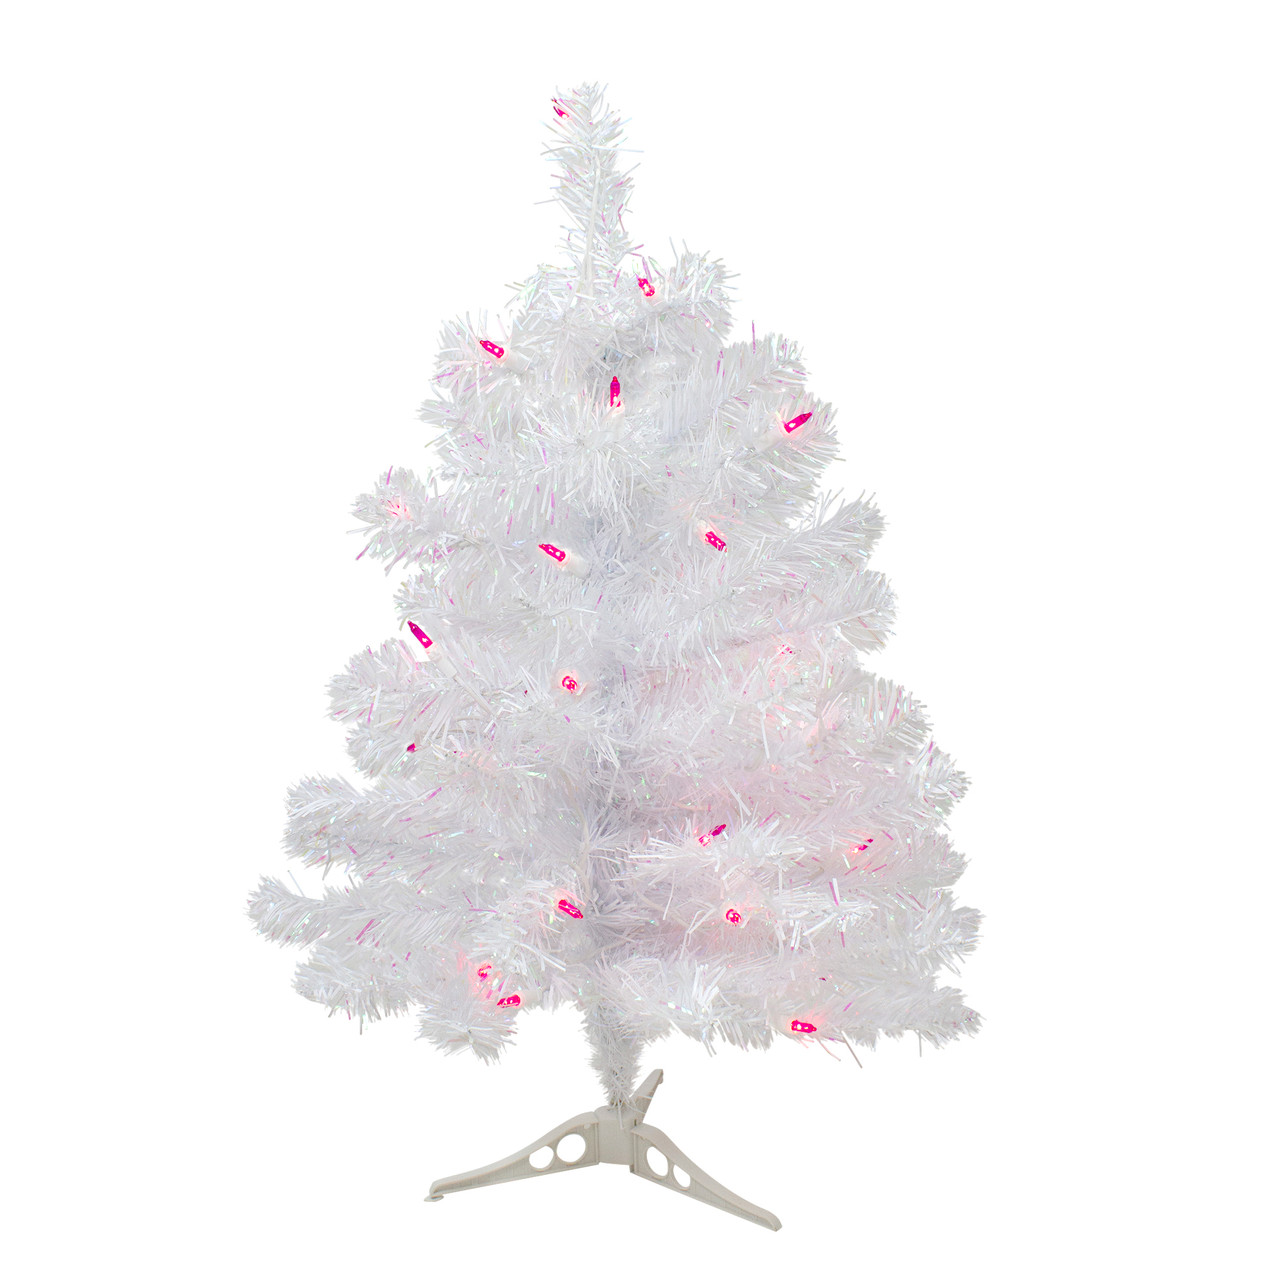 Pink Artificial Christmas Tree.2 Pre Lit White Iridescent Pine Artificial Christmas Tree Pink Lights 31465605